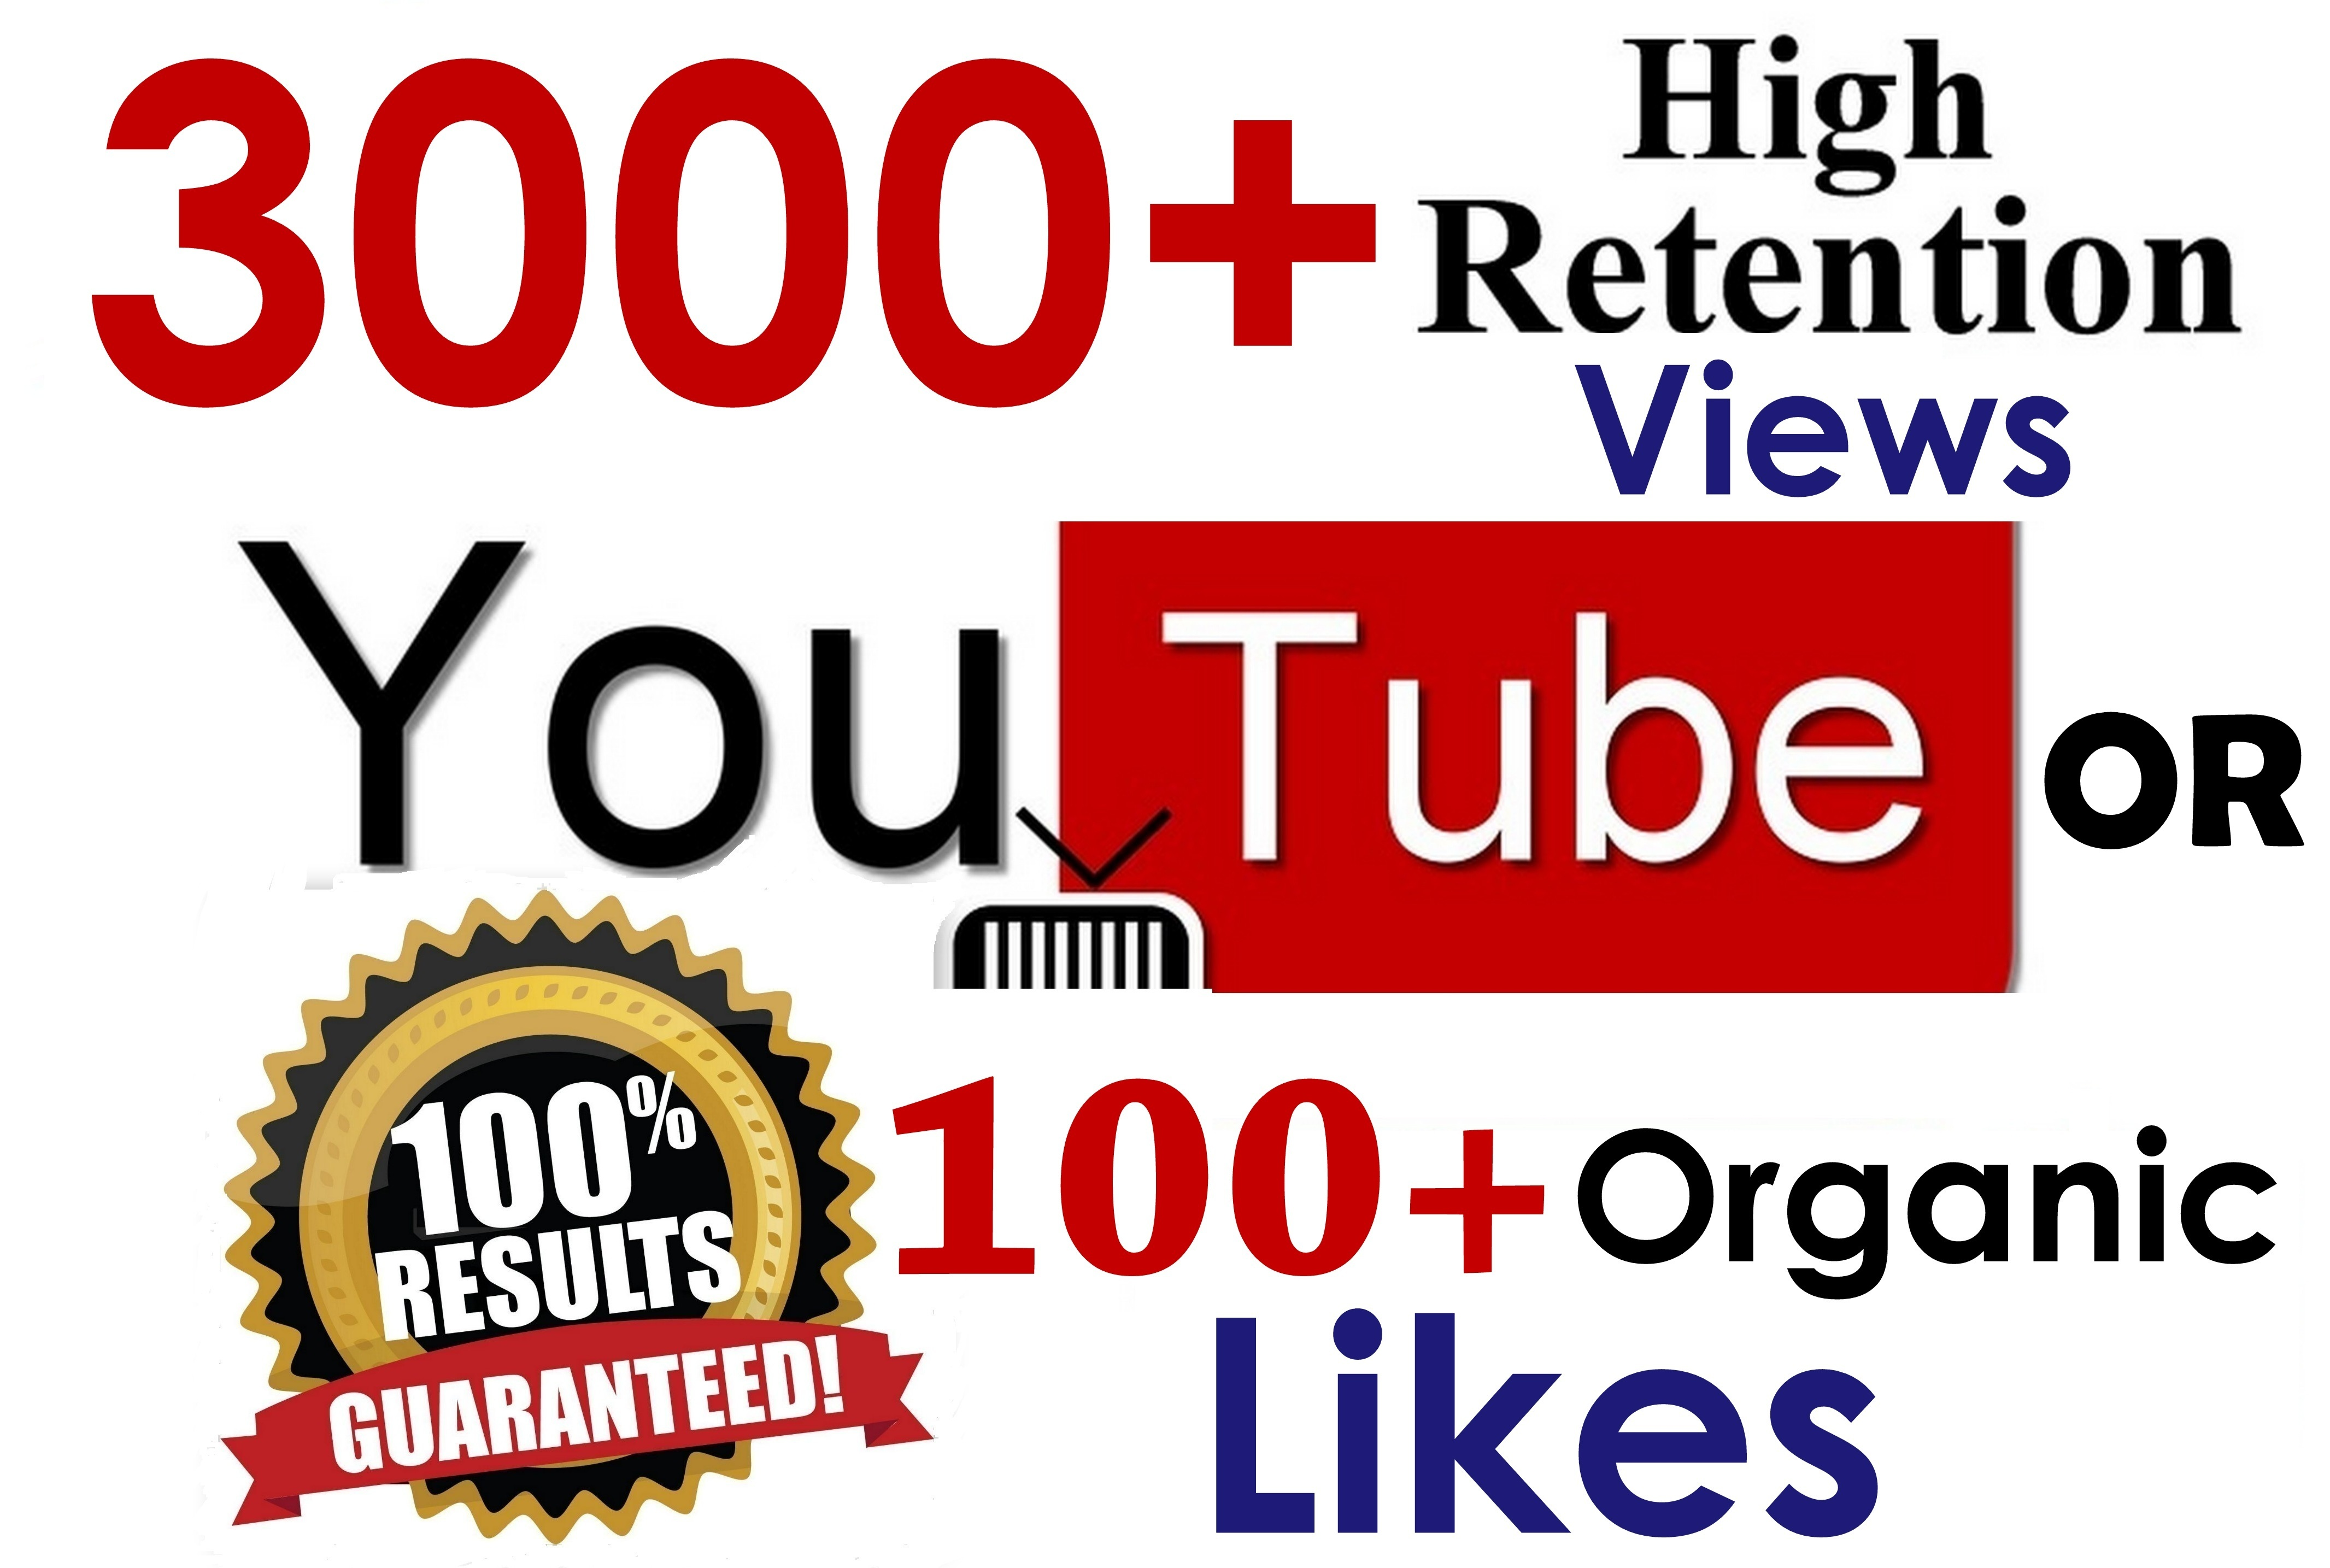 3000+ GR Views or 500+ Organic LlKES Youtbe Seopromotion